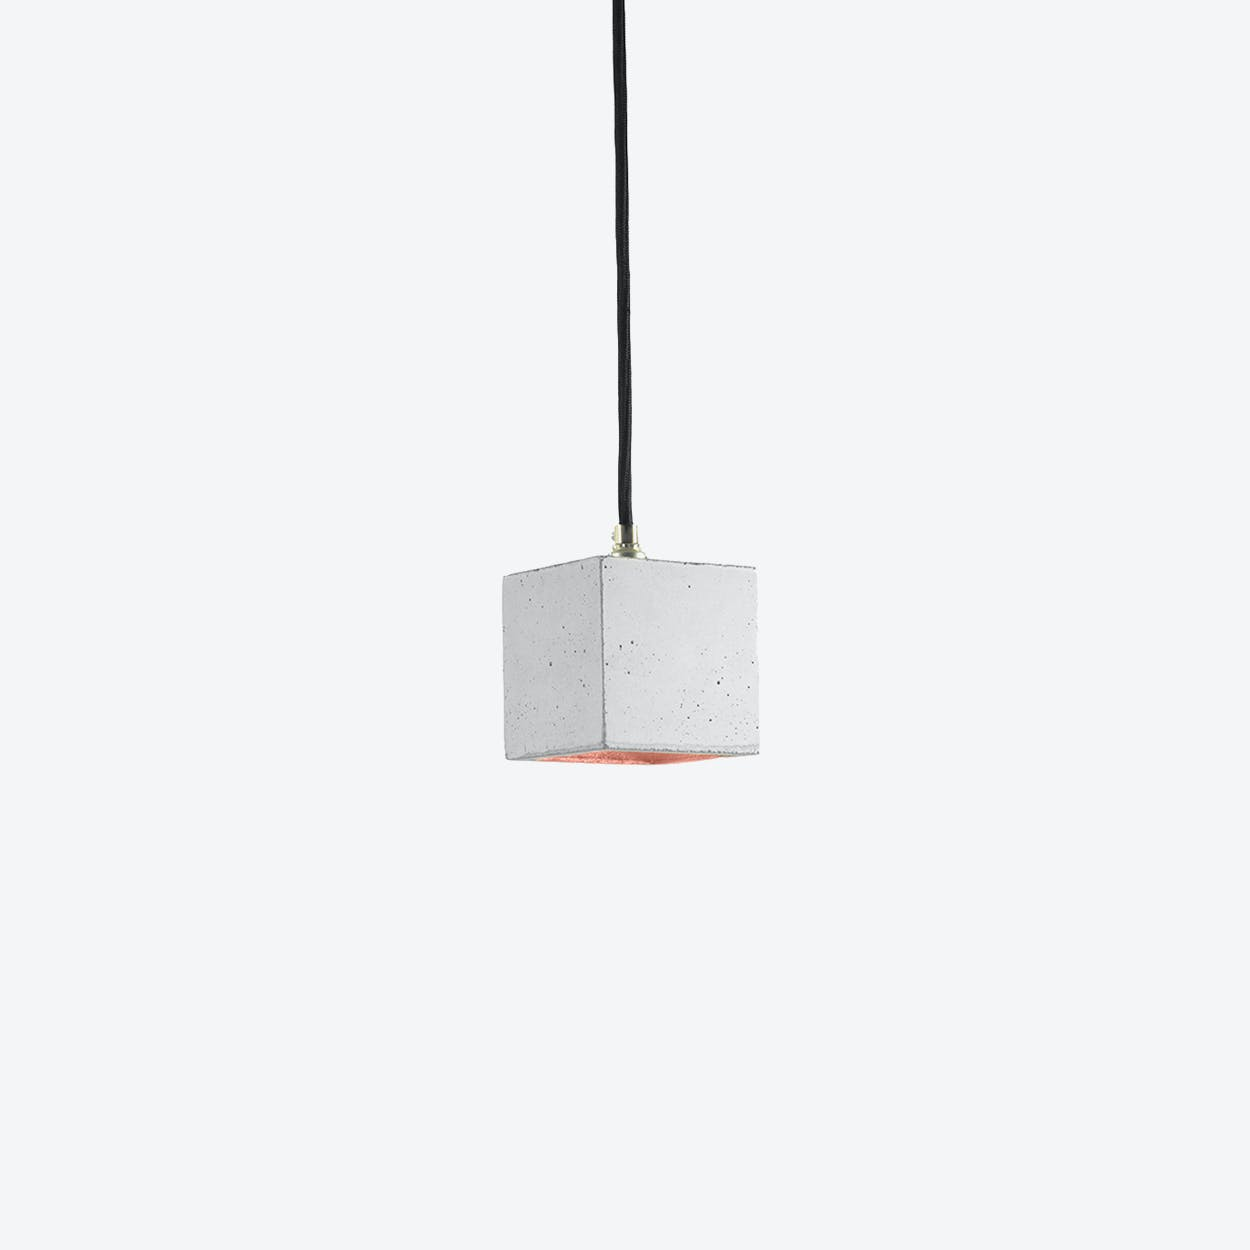 Concrete Pendant Light Cubic Small B6 in Light Grey and Copper